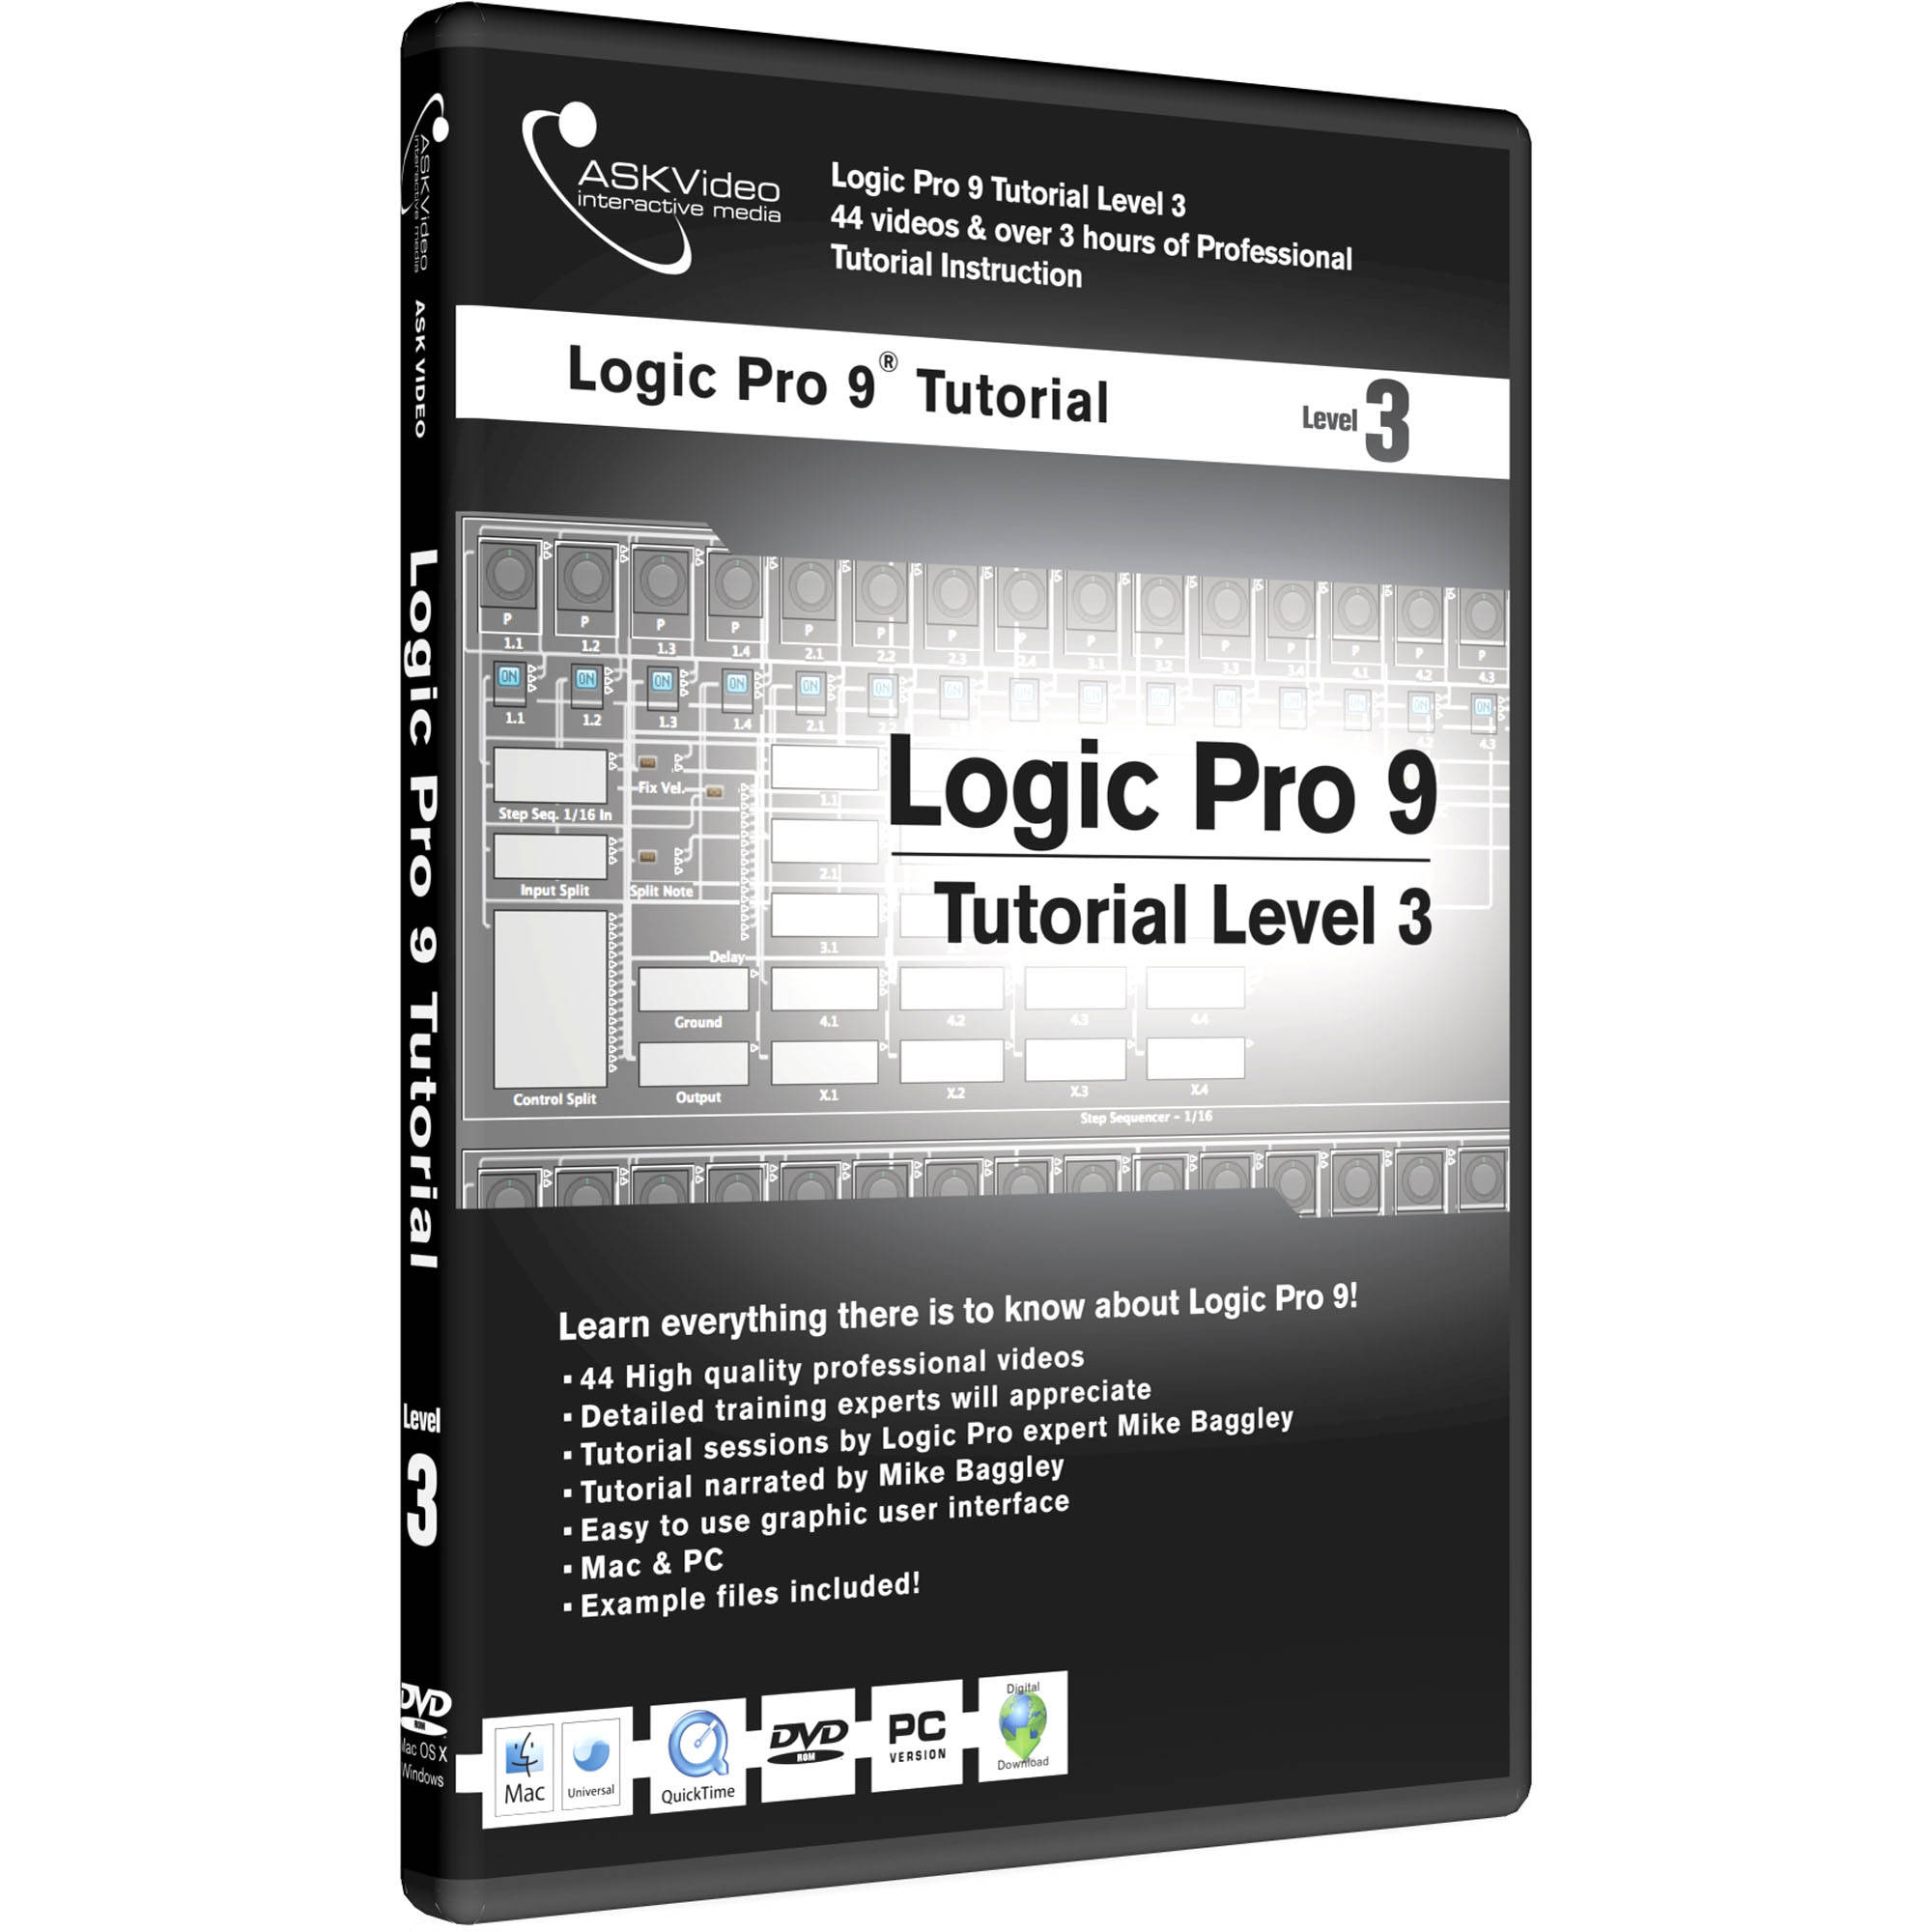 ASK Video Electronic Download: Logic Pro 9 Tutorial Level 3